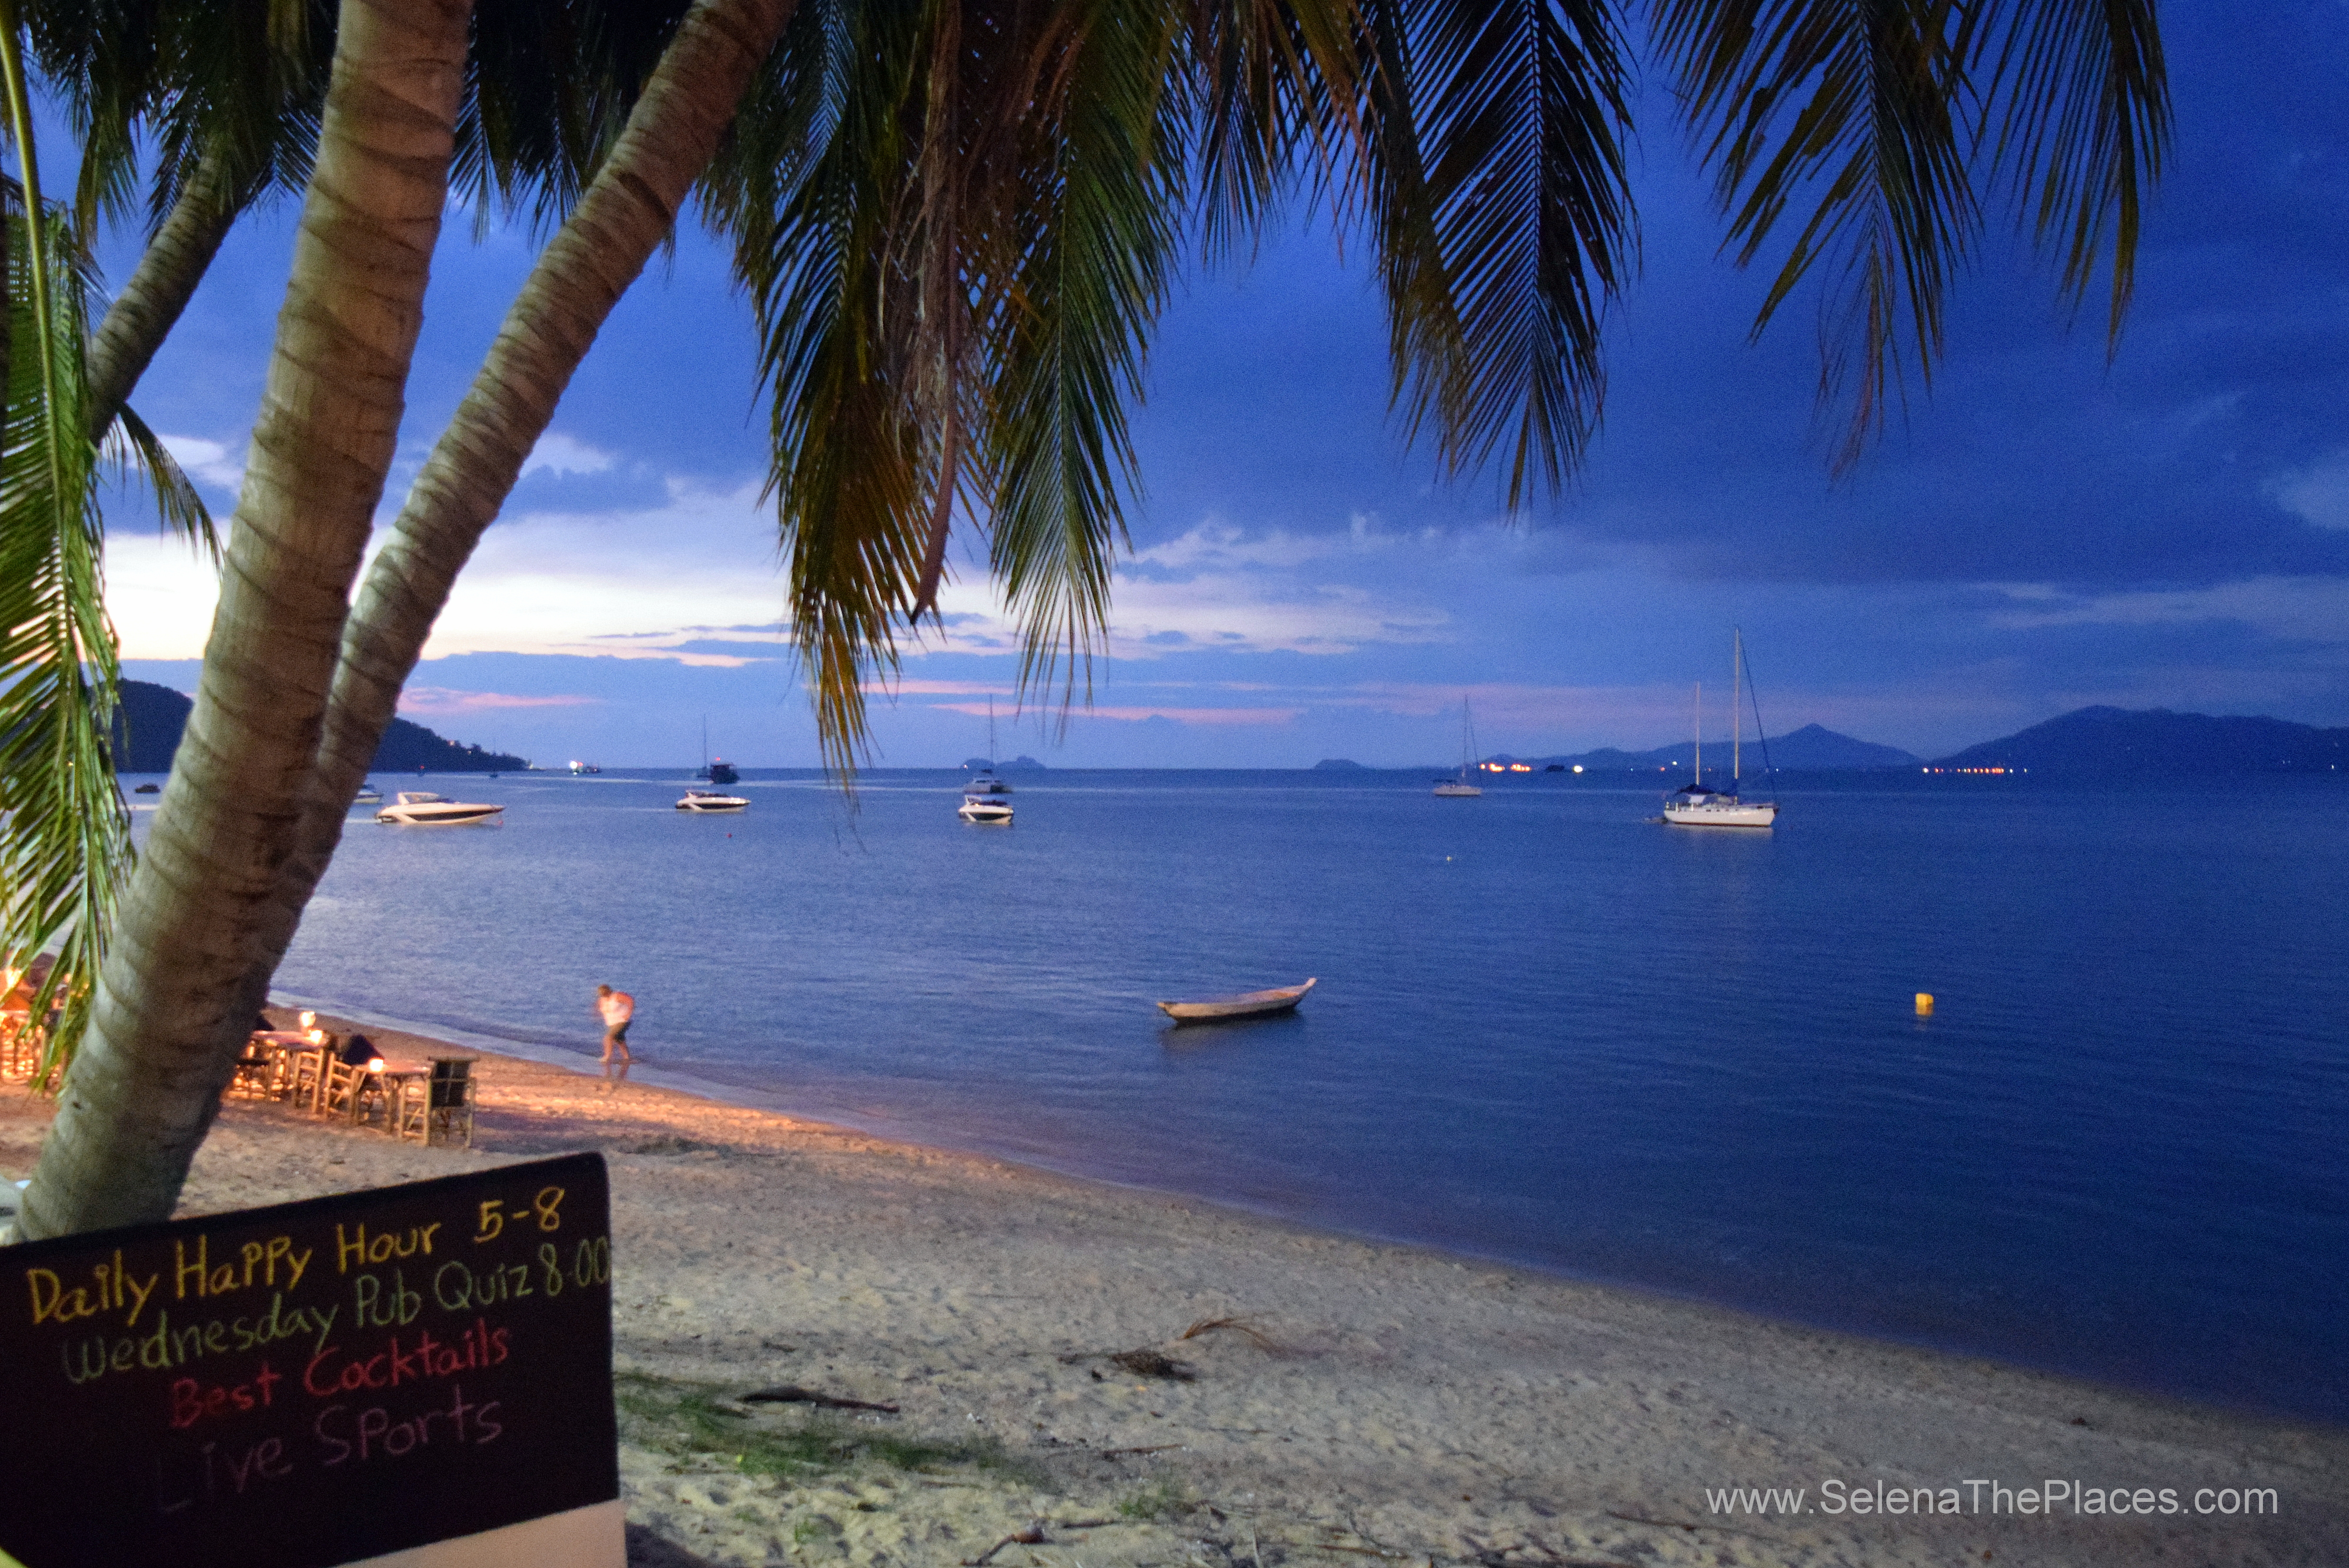 Fisherman's Village in Koh Samui, Thailand